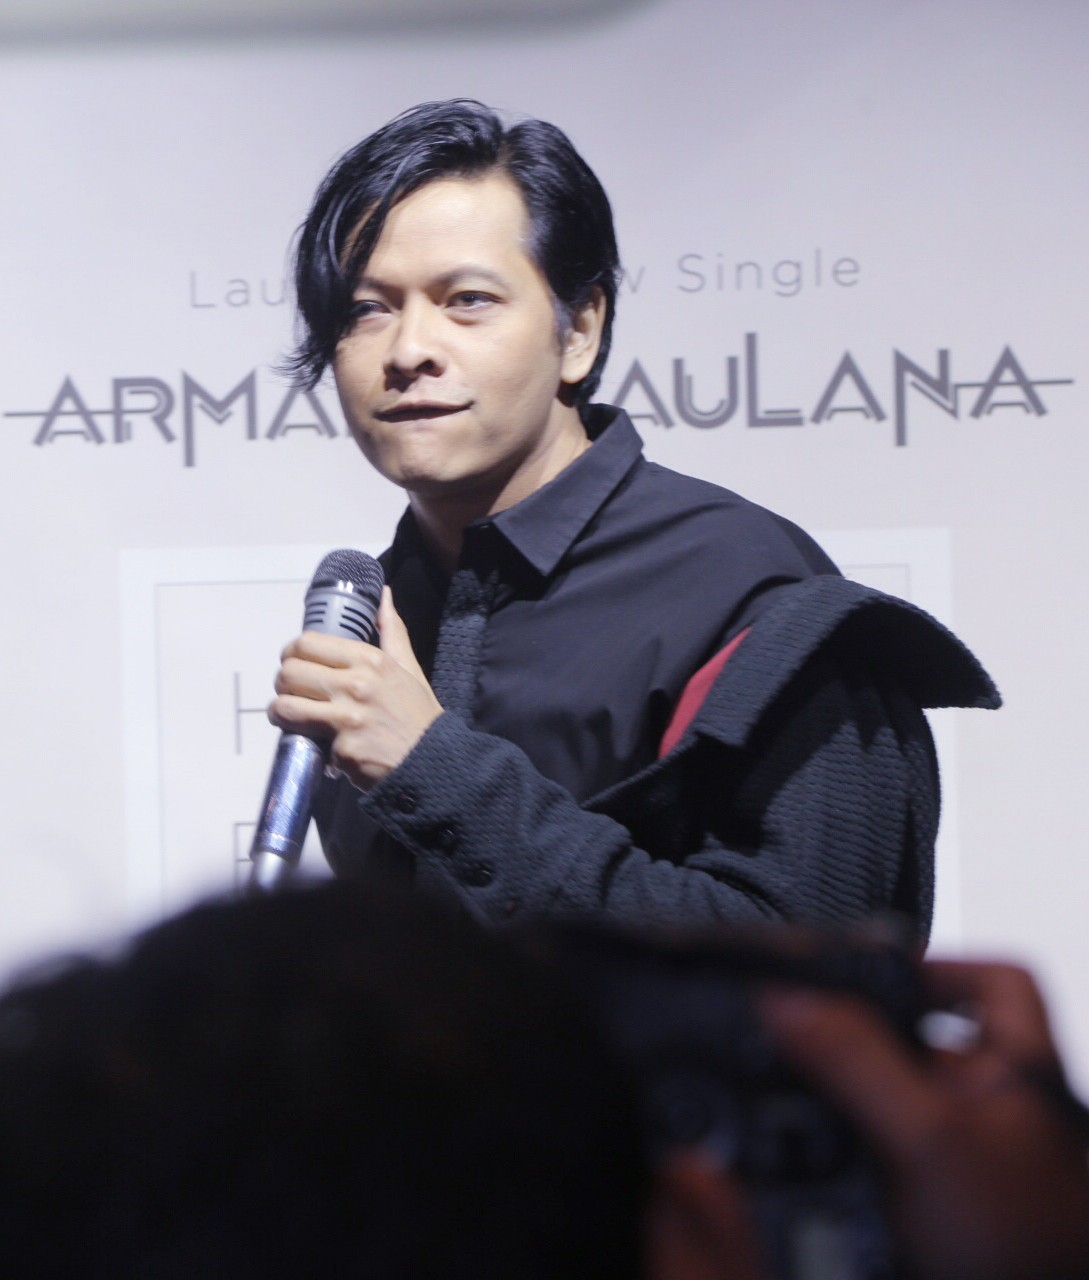 'ARANA Project' is Armand Maulana New Project